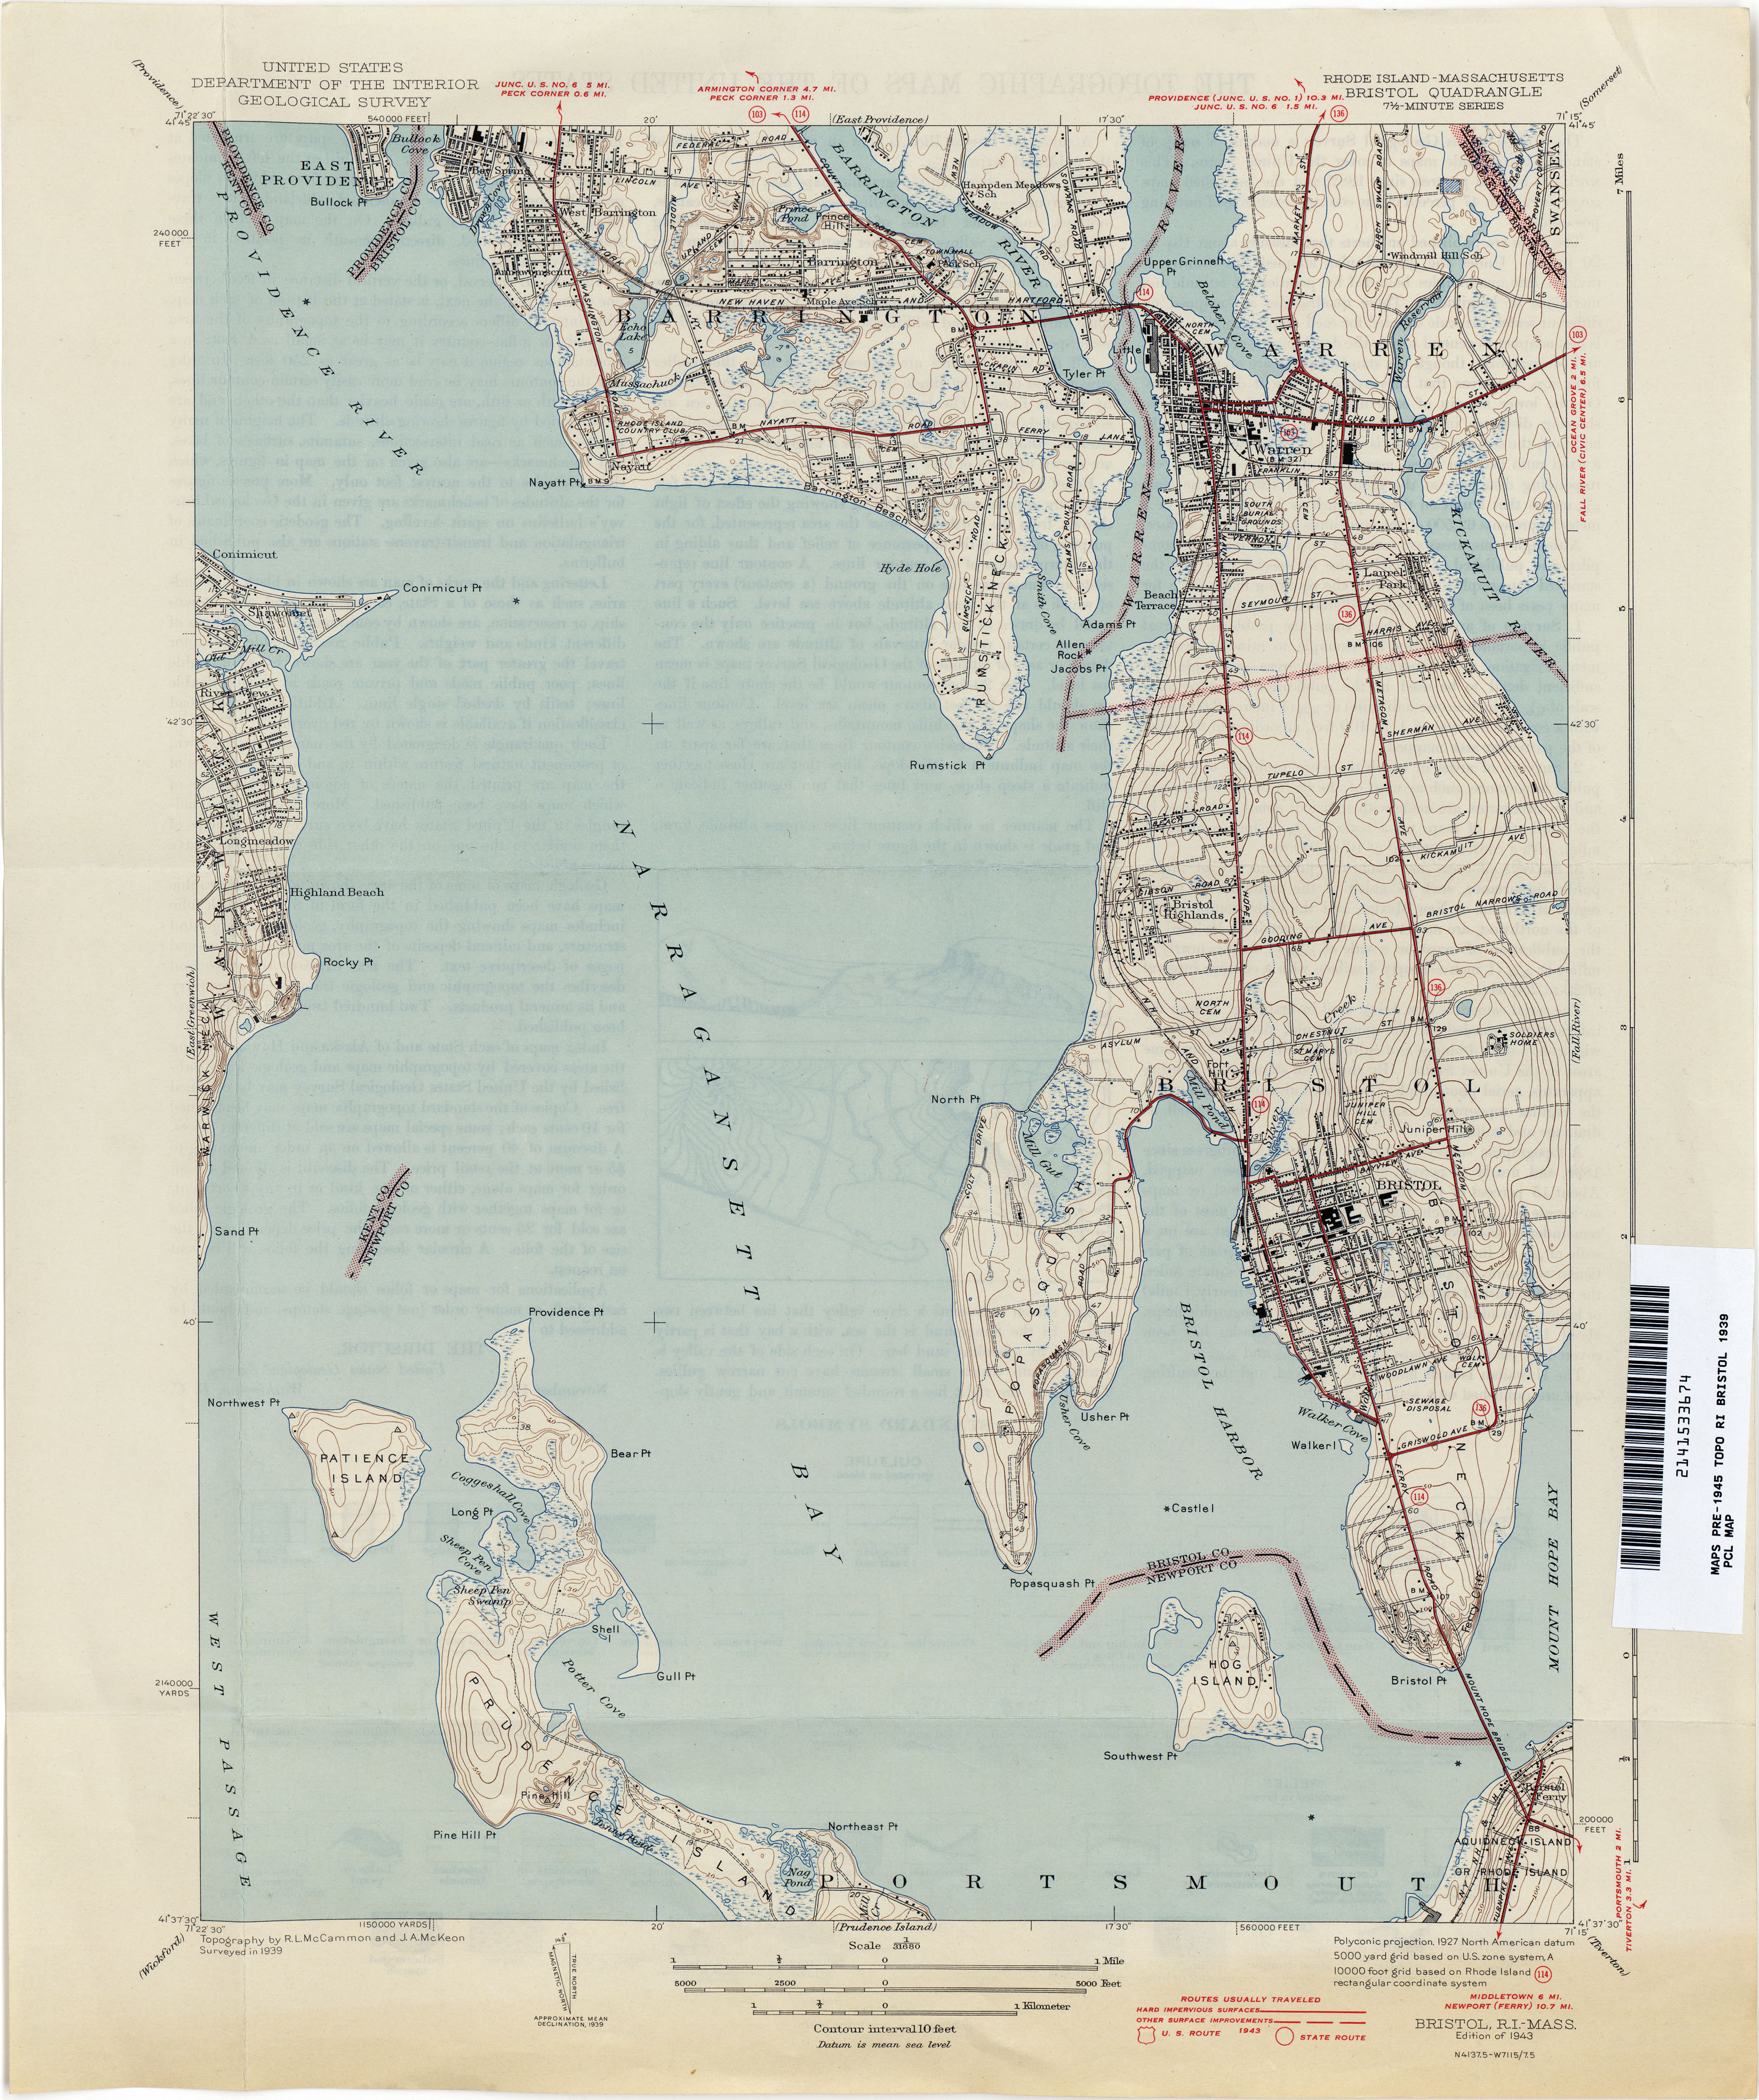 Rhode Island Historical Topographic Maps - Perry-Castañeda Map ...